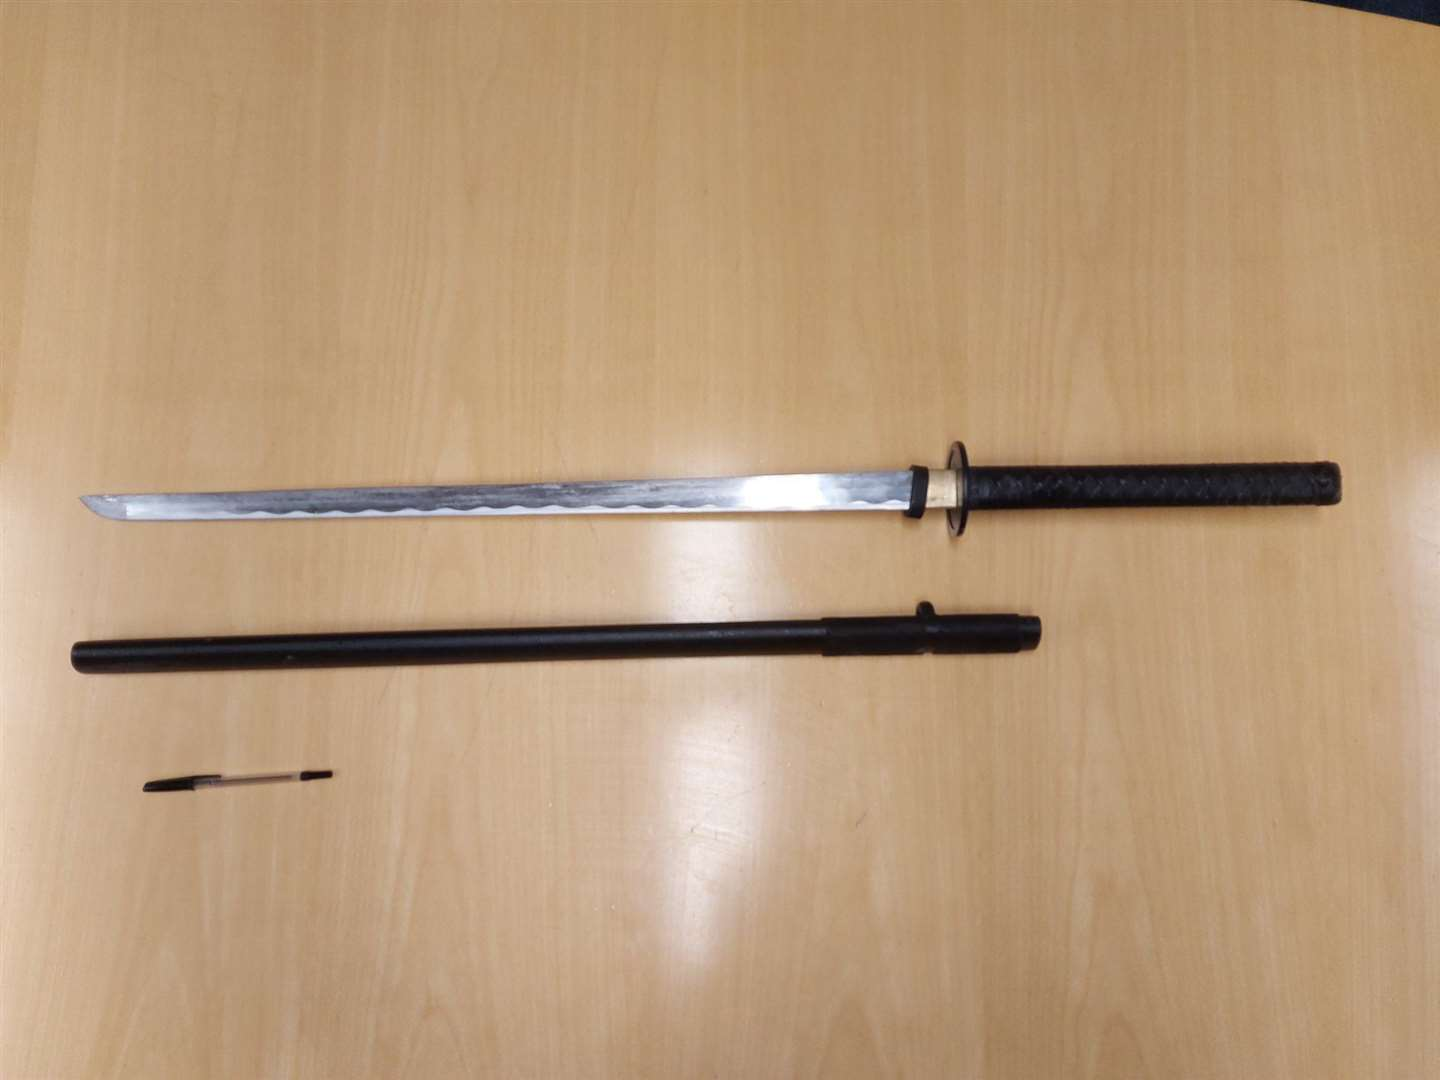 Police seized this sword after stopping a car in Tenterden, with a pen for scale. Photo: Kent Police